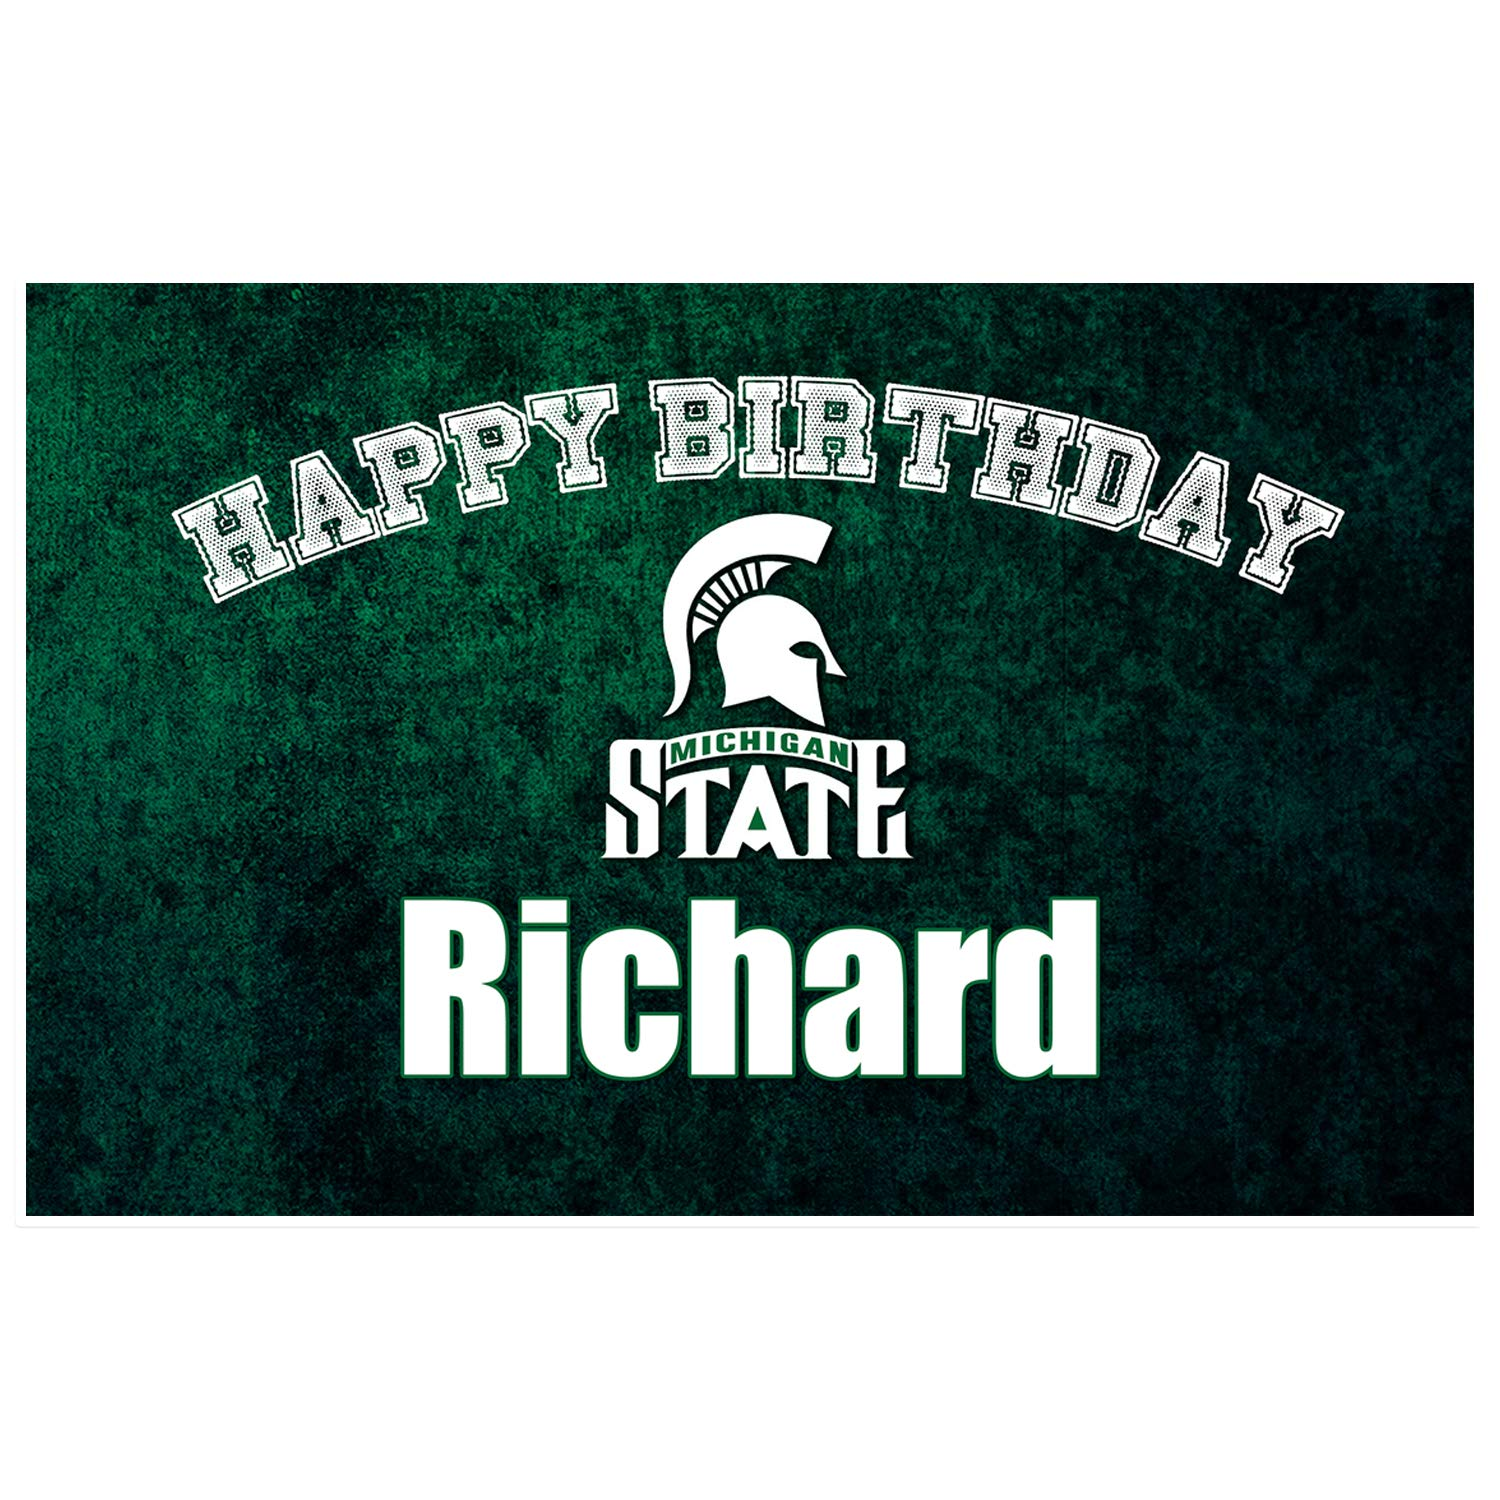 Michigan State Football Birthday Dec Placemat Table Easy-to-use Don't miss the campaign Personalized